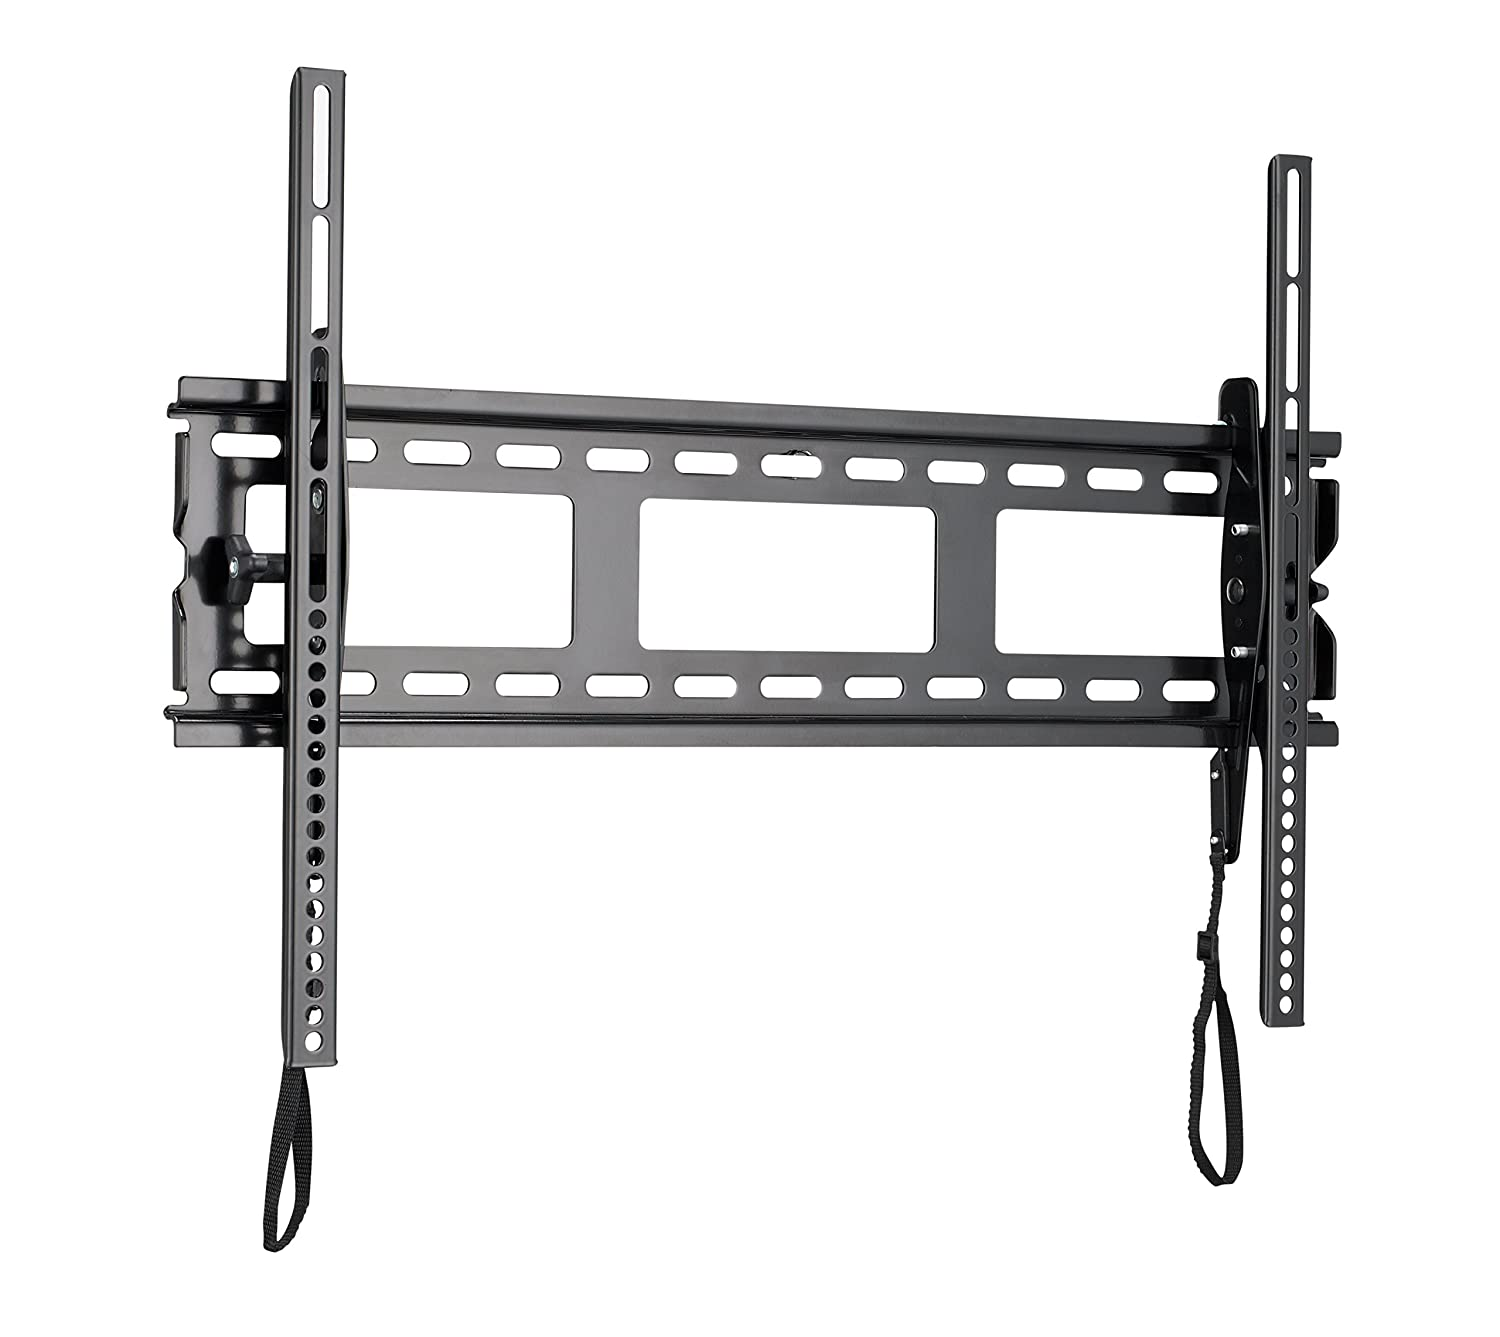 Sanus Low Profile Tilt Wall Mount for 37-80-Inch TV and Monitor MLT14-B1